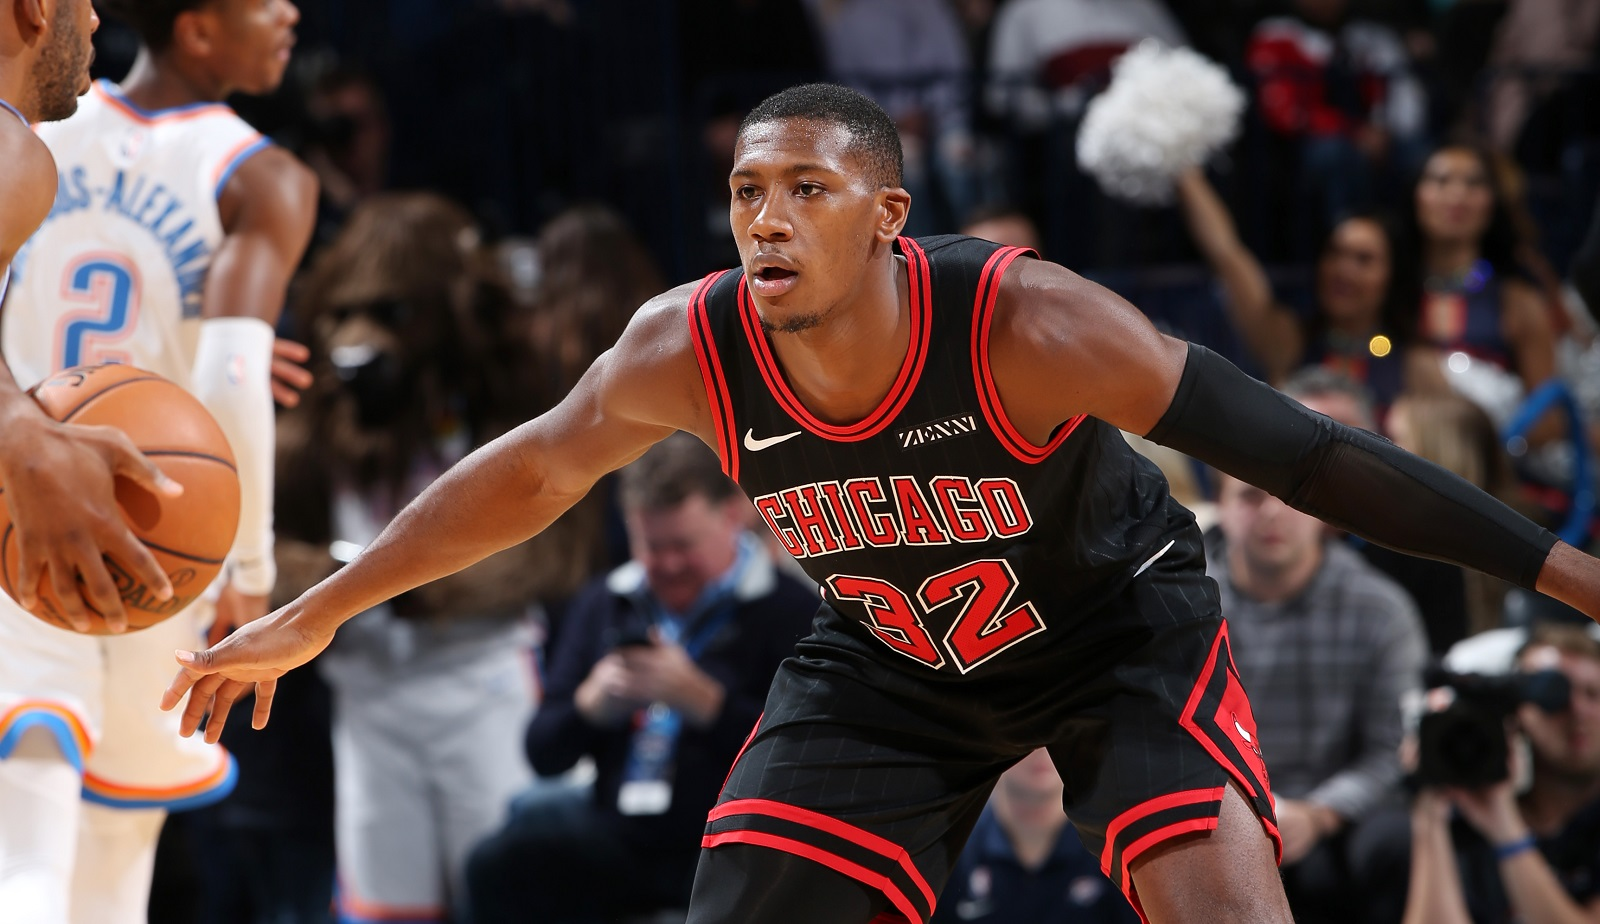 Hawks sign Kris Dunn to reported 2-year deal